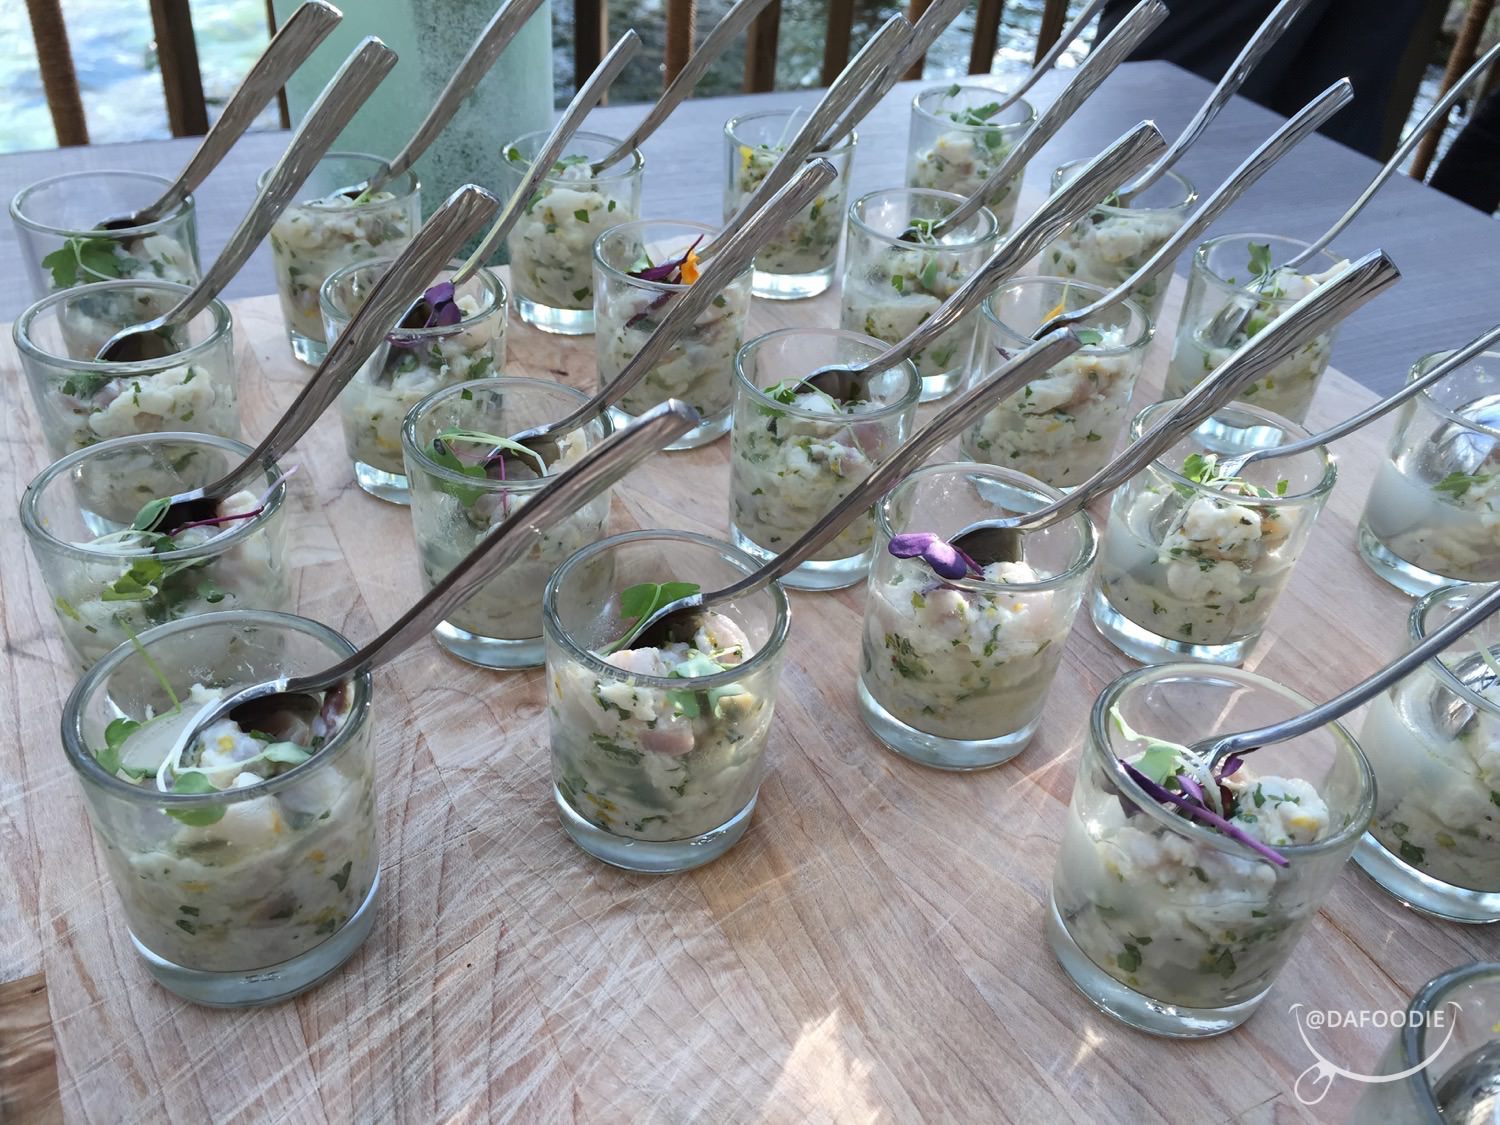 Tasty ceviche from Gary's Seafood & Specialties Table.